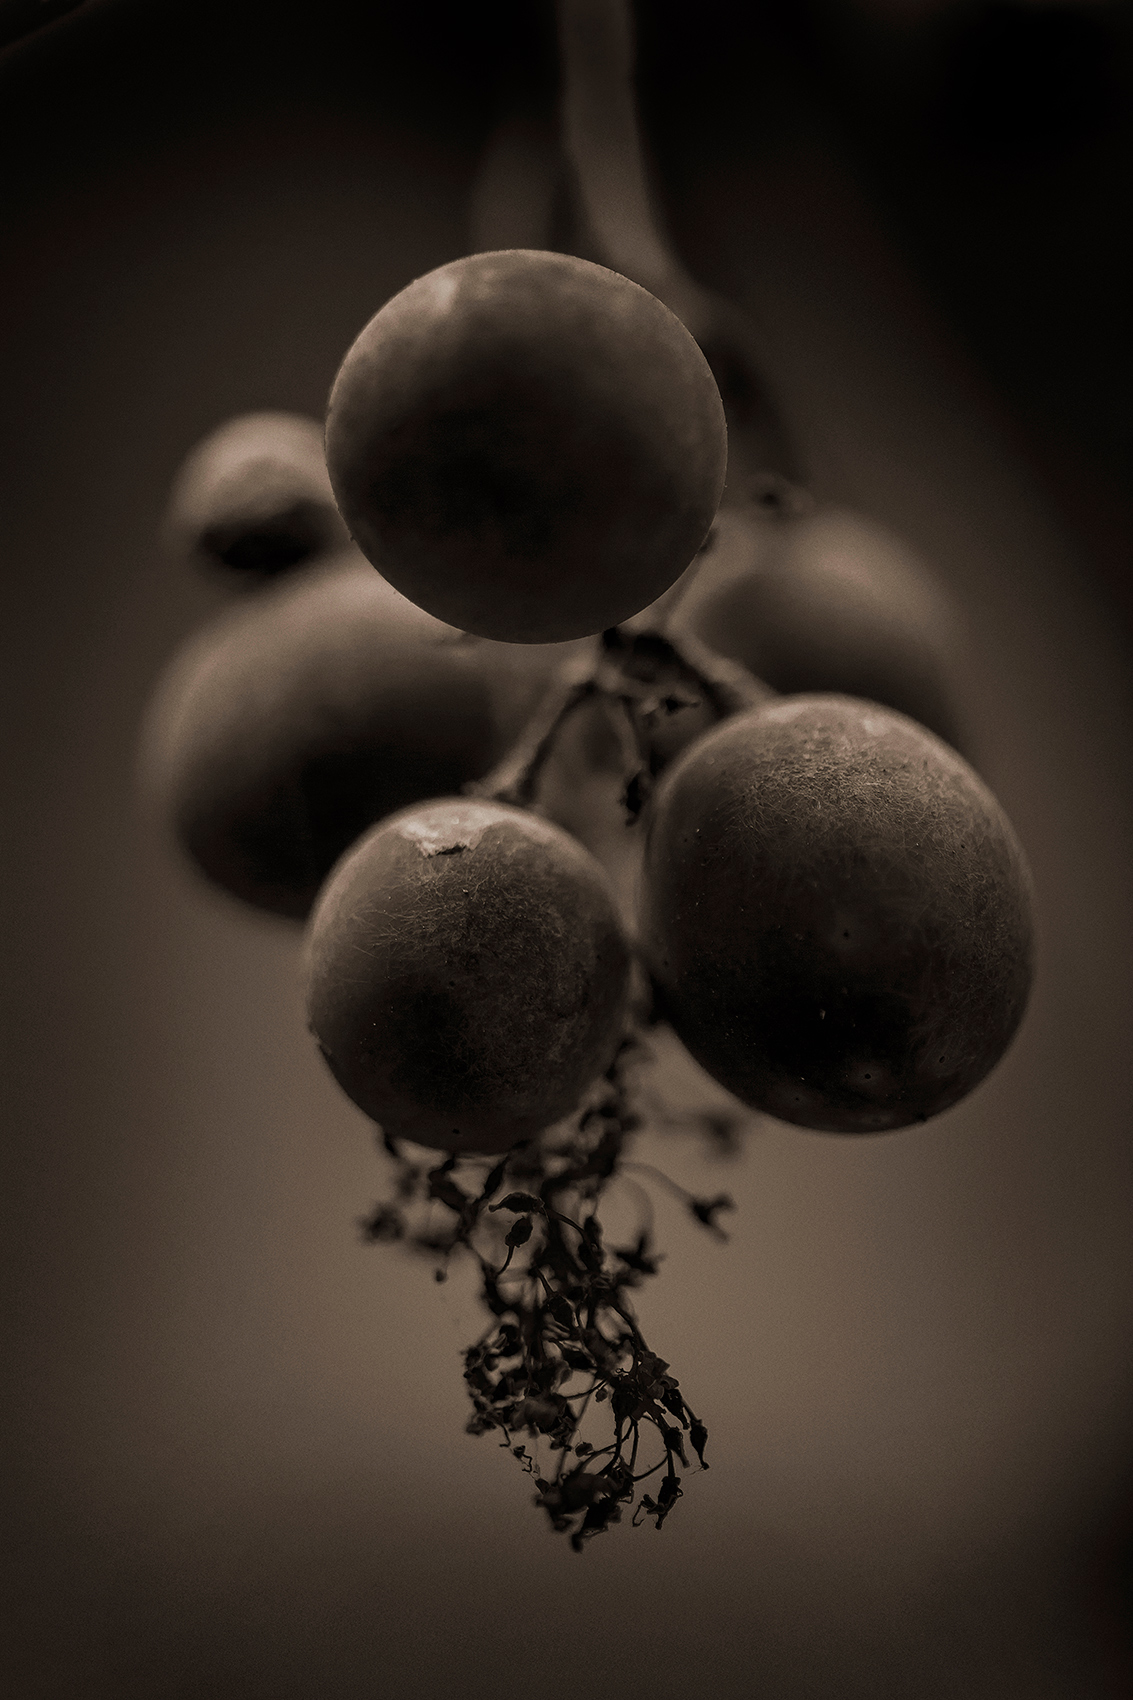 Harvest_Grapes_XS0O2352_web